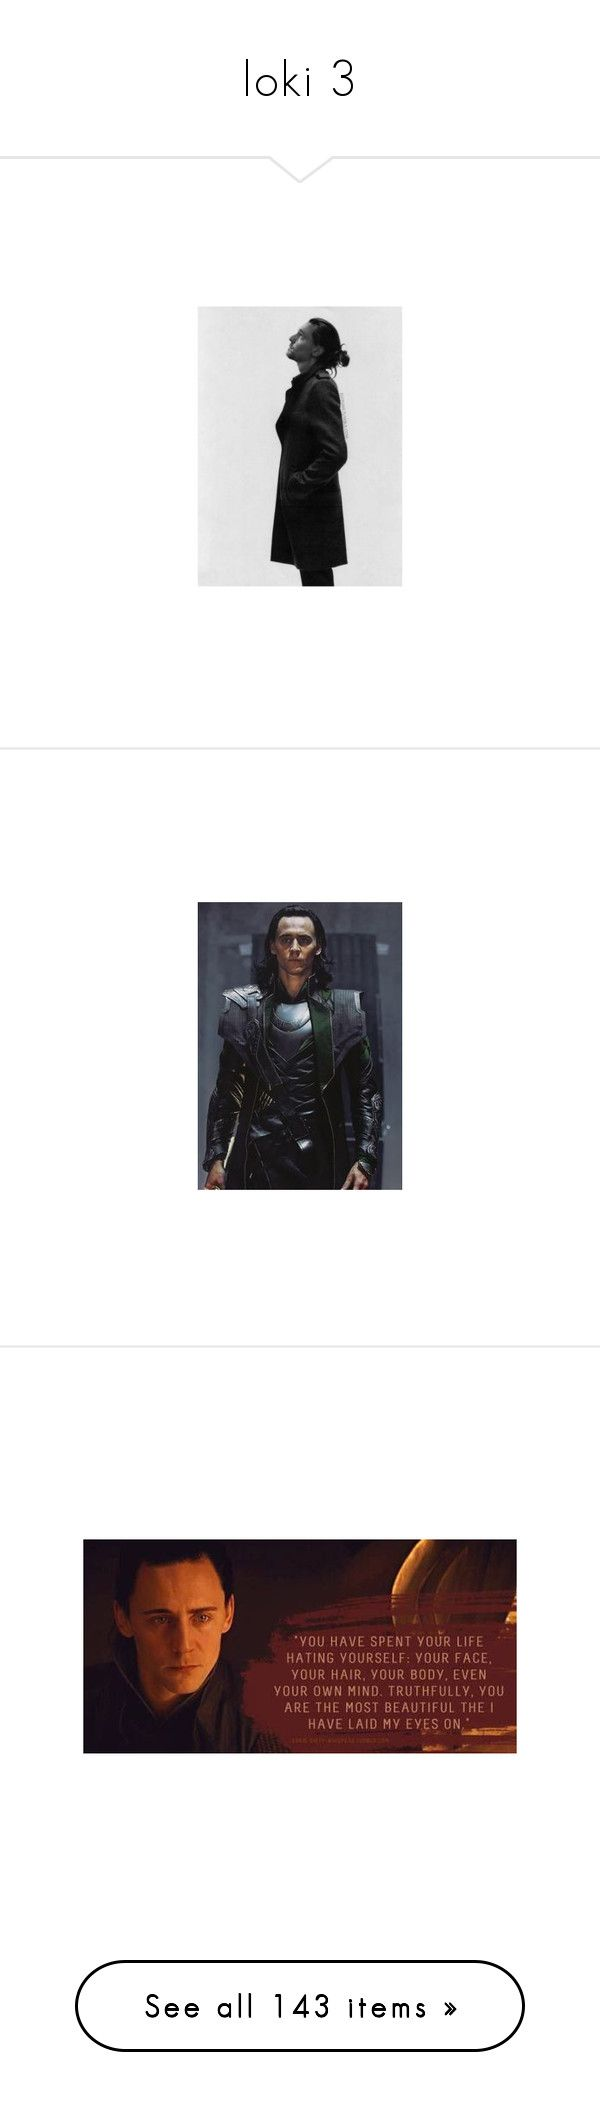 """""""loki 3"""" by eloise-monique-dufour ❤ liked on Polyvore featuring loki, people, men, tom hiddleston, marvel, avengers, marvel/dc, accessories, hiddleston and tom"""